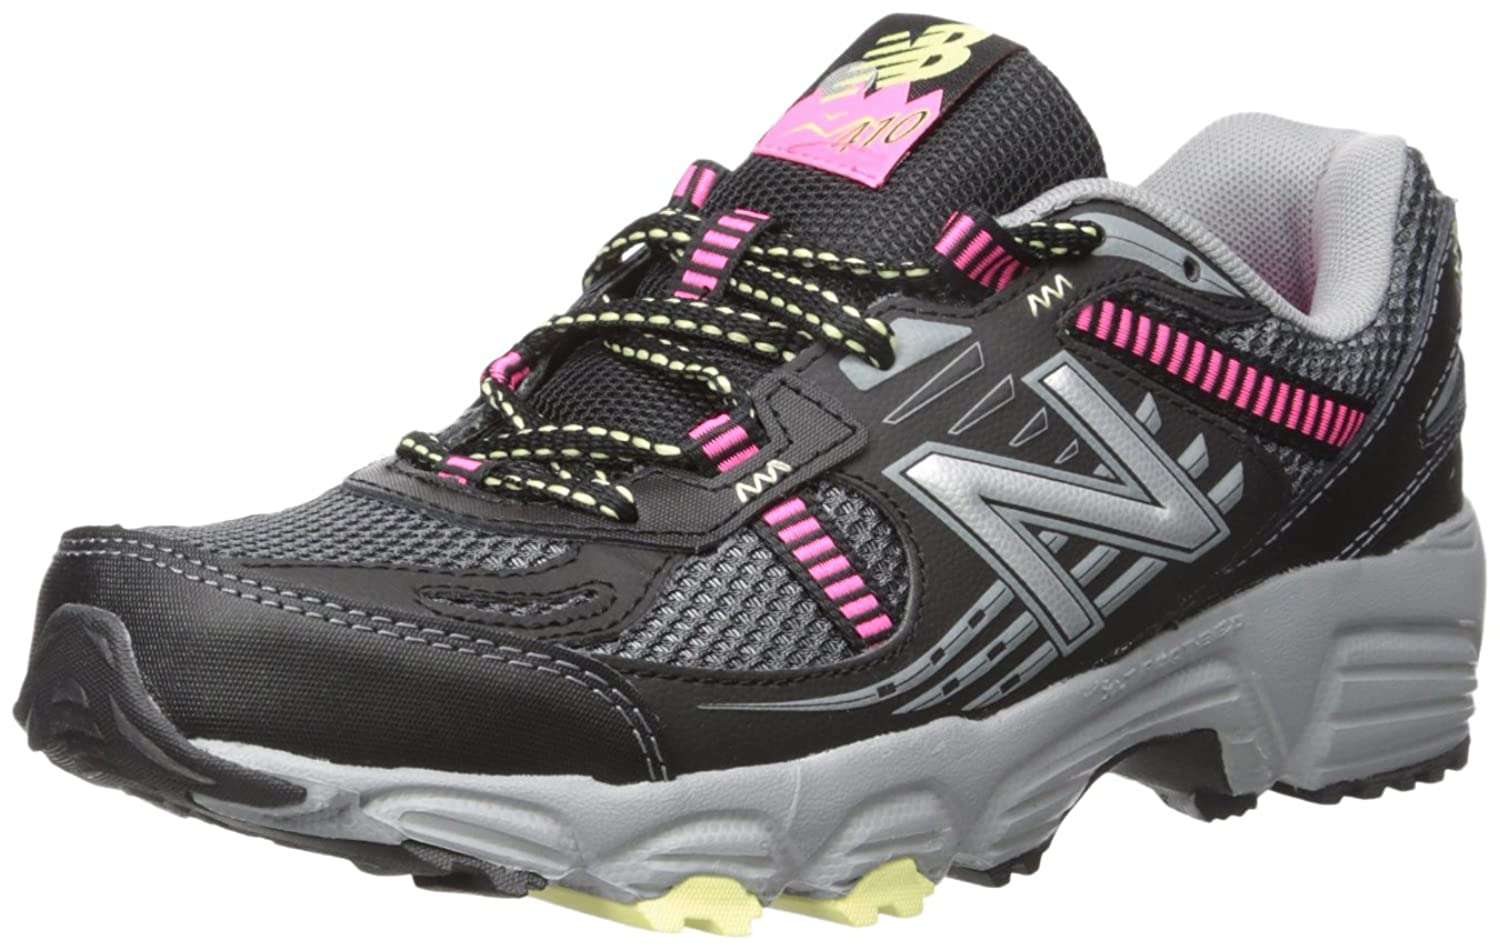 New Balance Women's WT410V4 Trail-Running Shoes Black/Pink